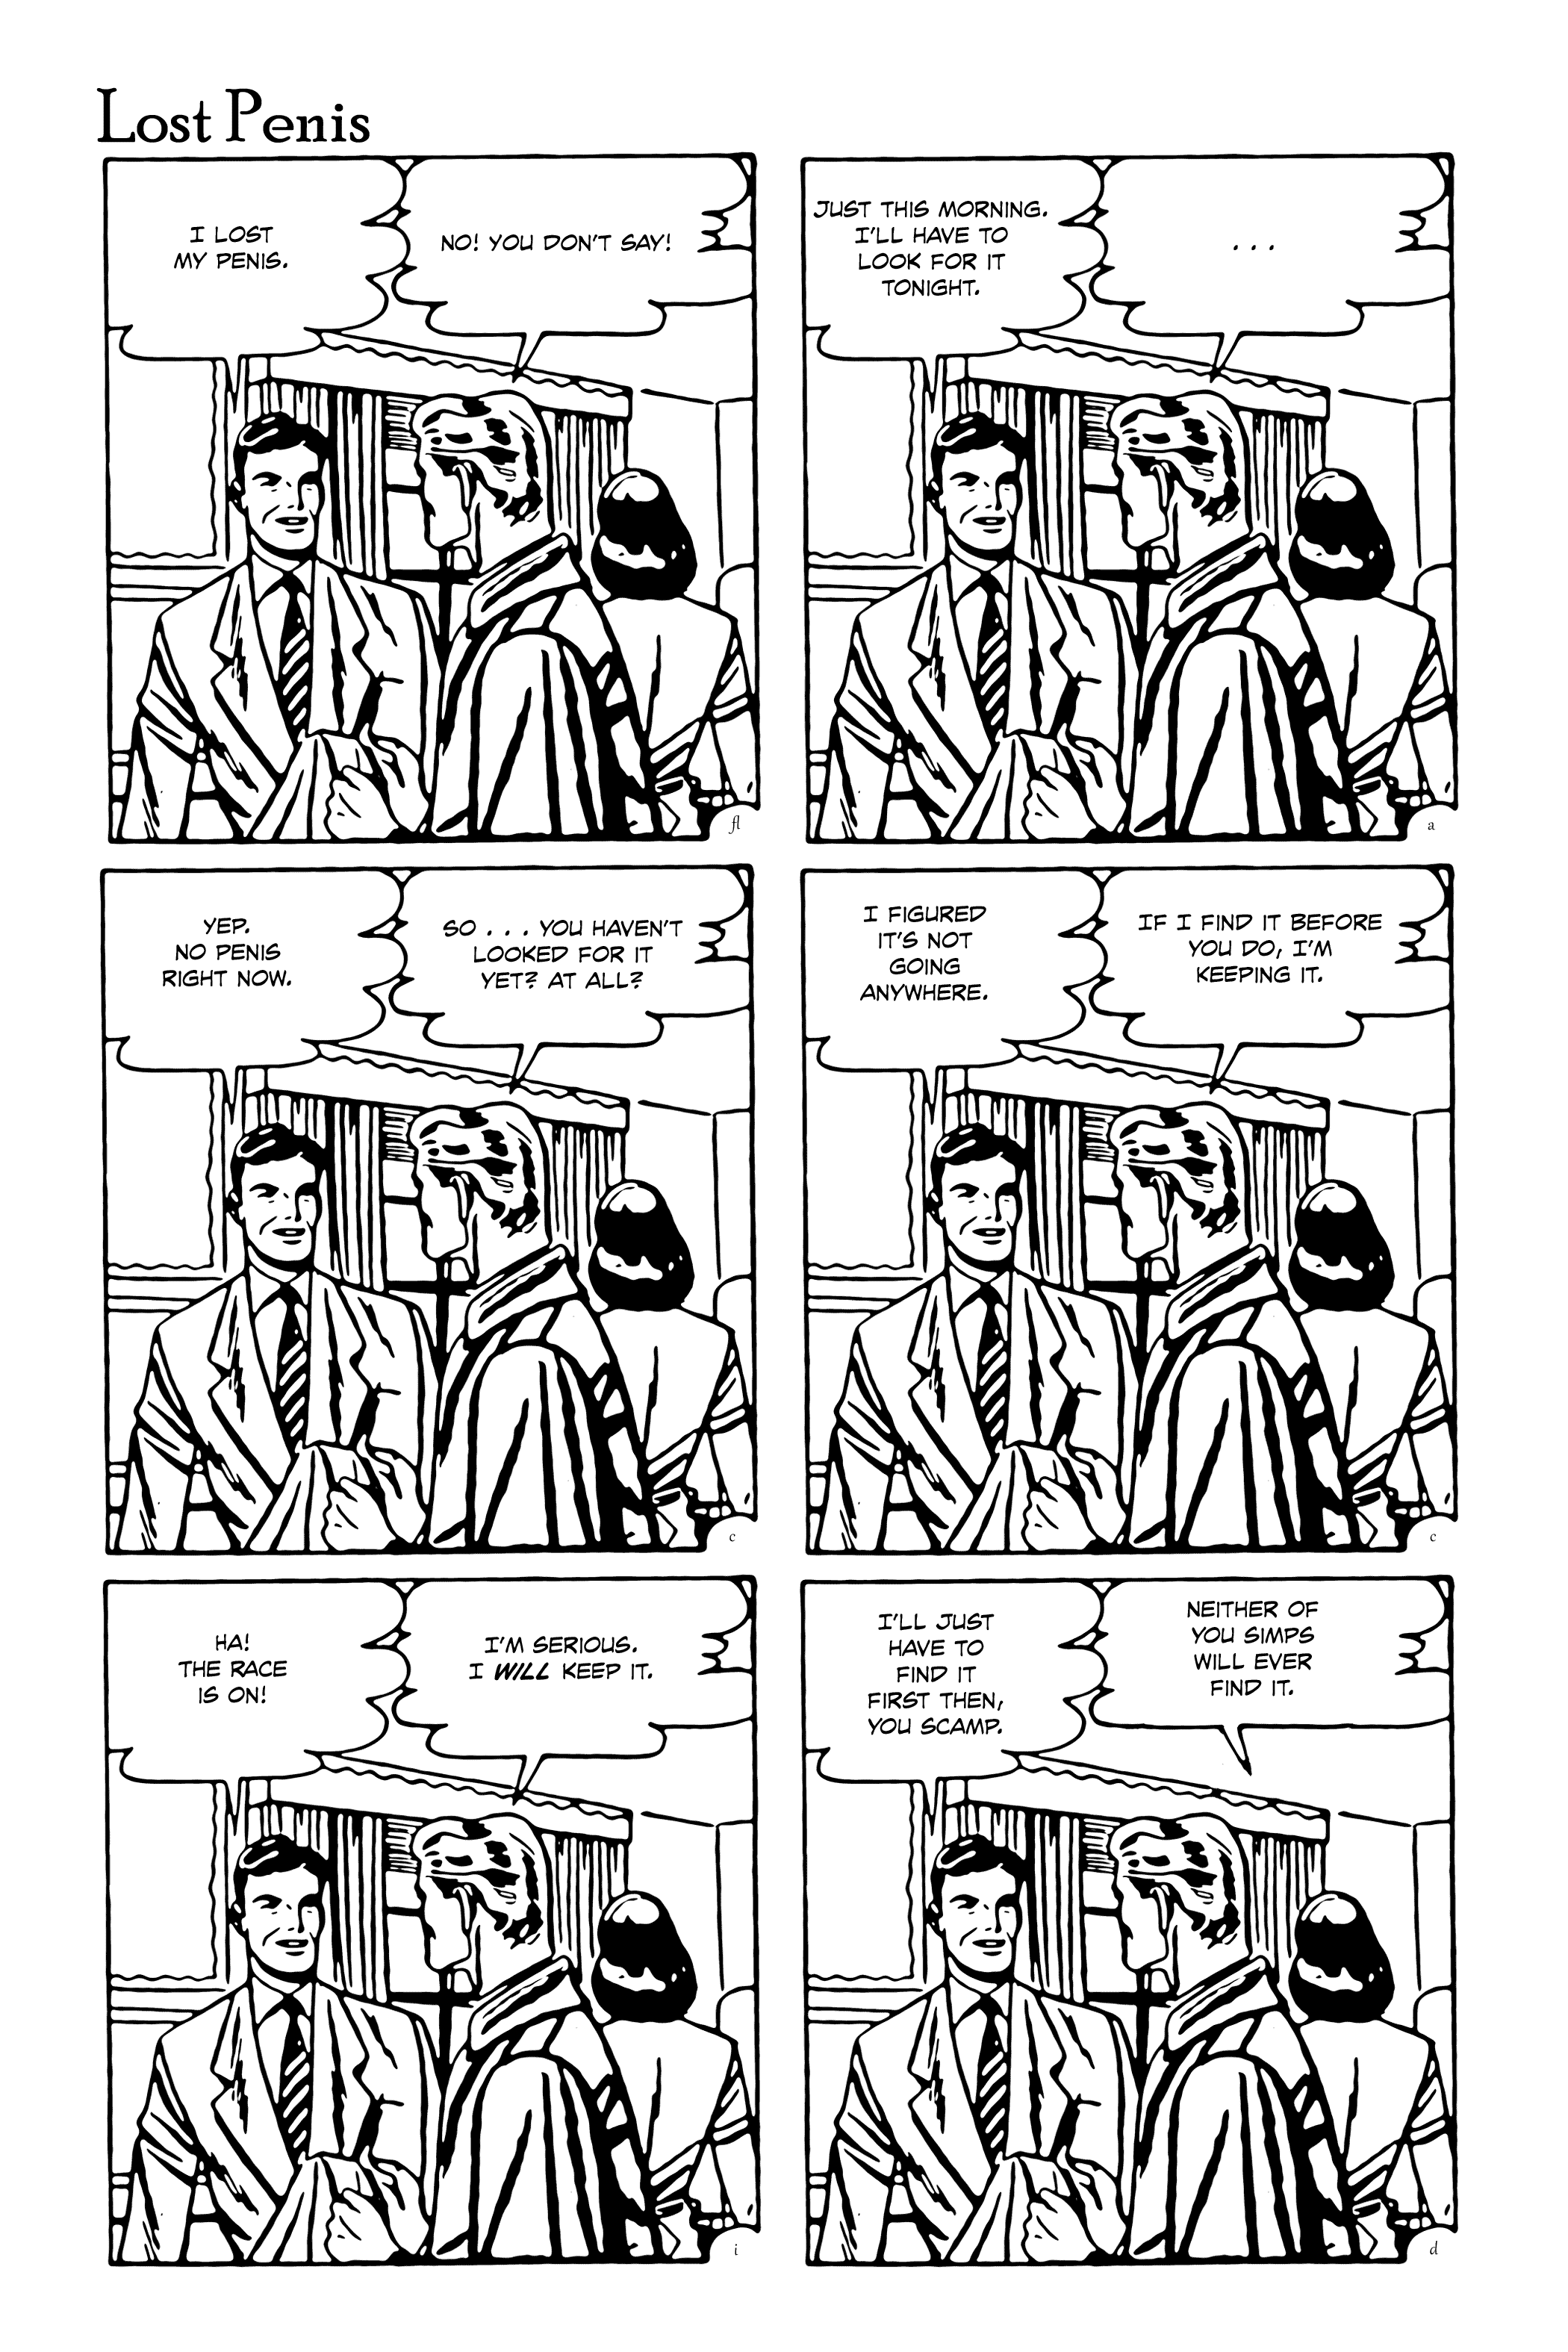 Lost Penis (from Flight by Dave McAwesome)